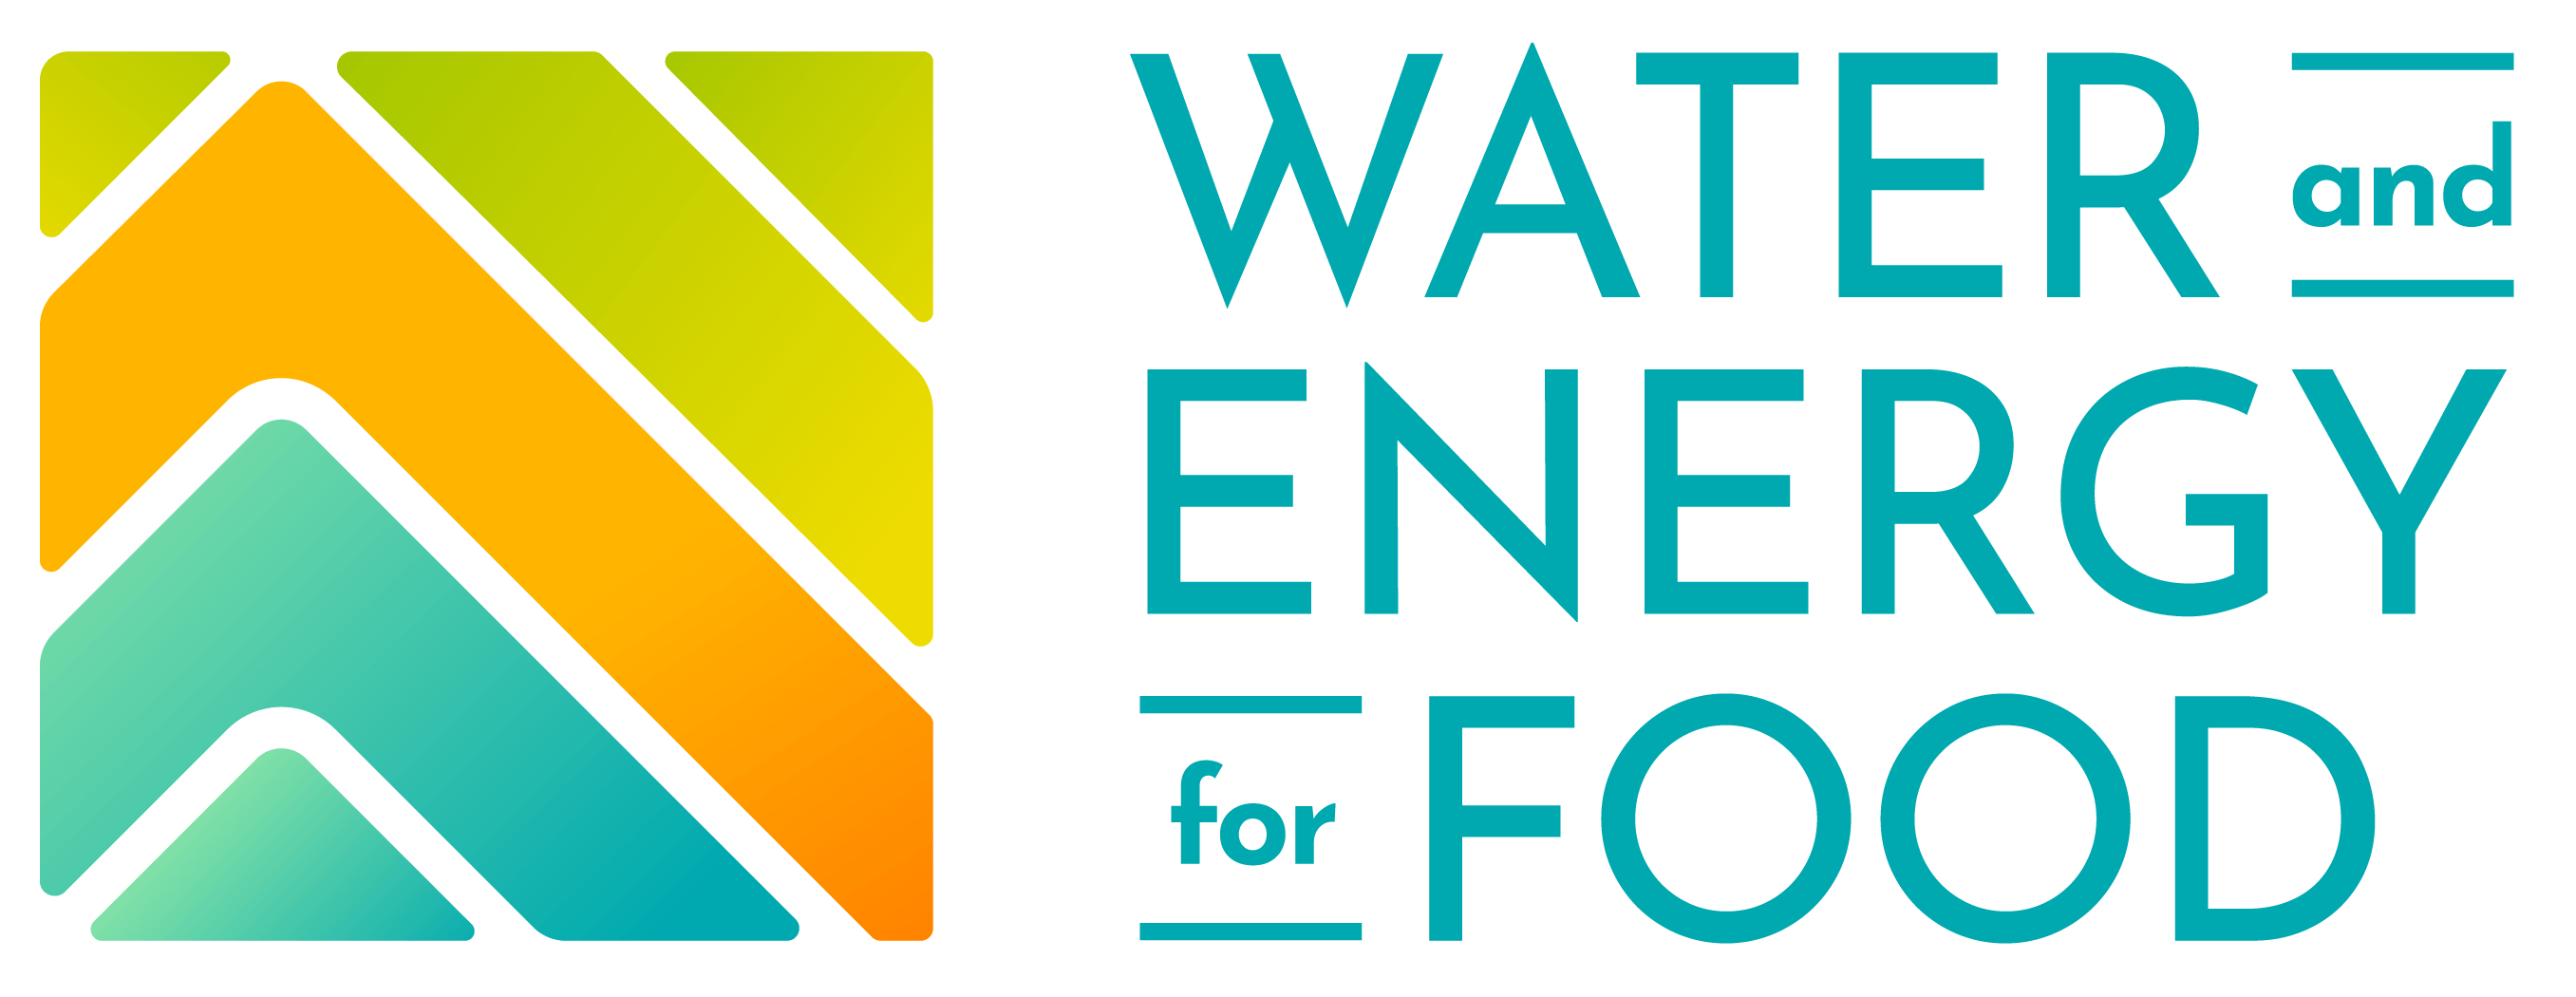 color version of the Water and Energy for Food logo